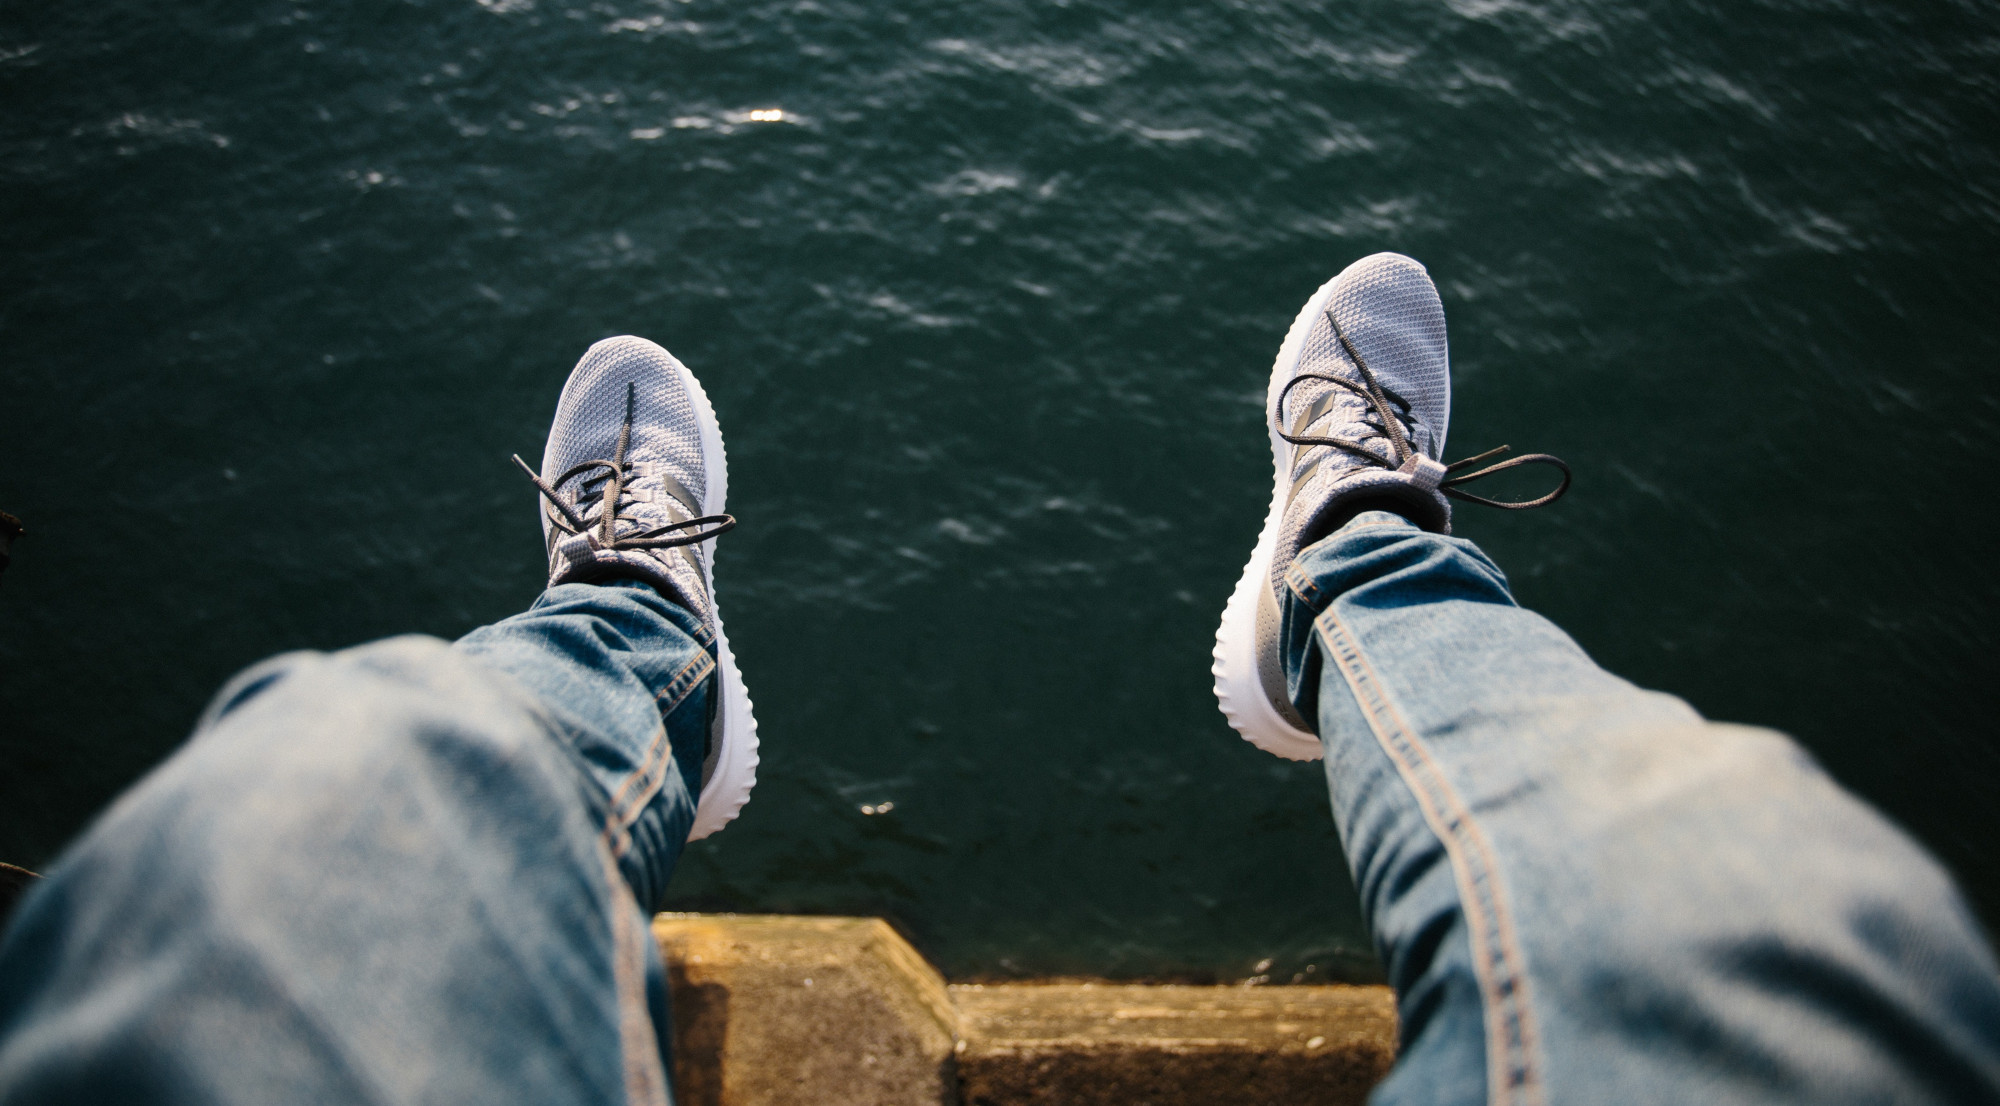 mindfulmedicine.co.uk image: Photo of someone dangling their legs over water